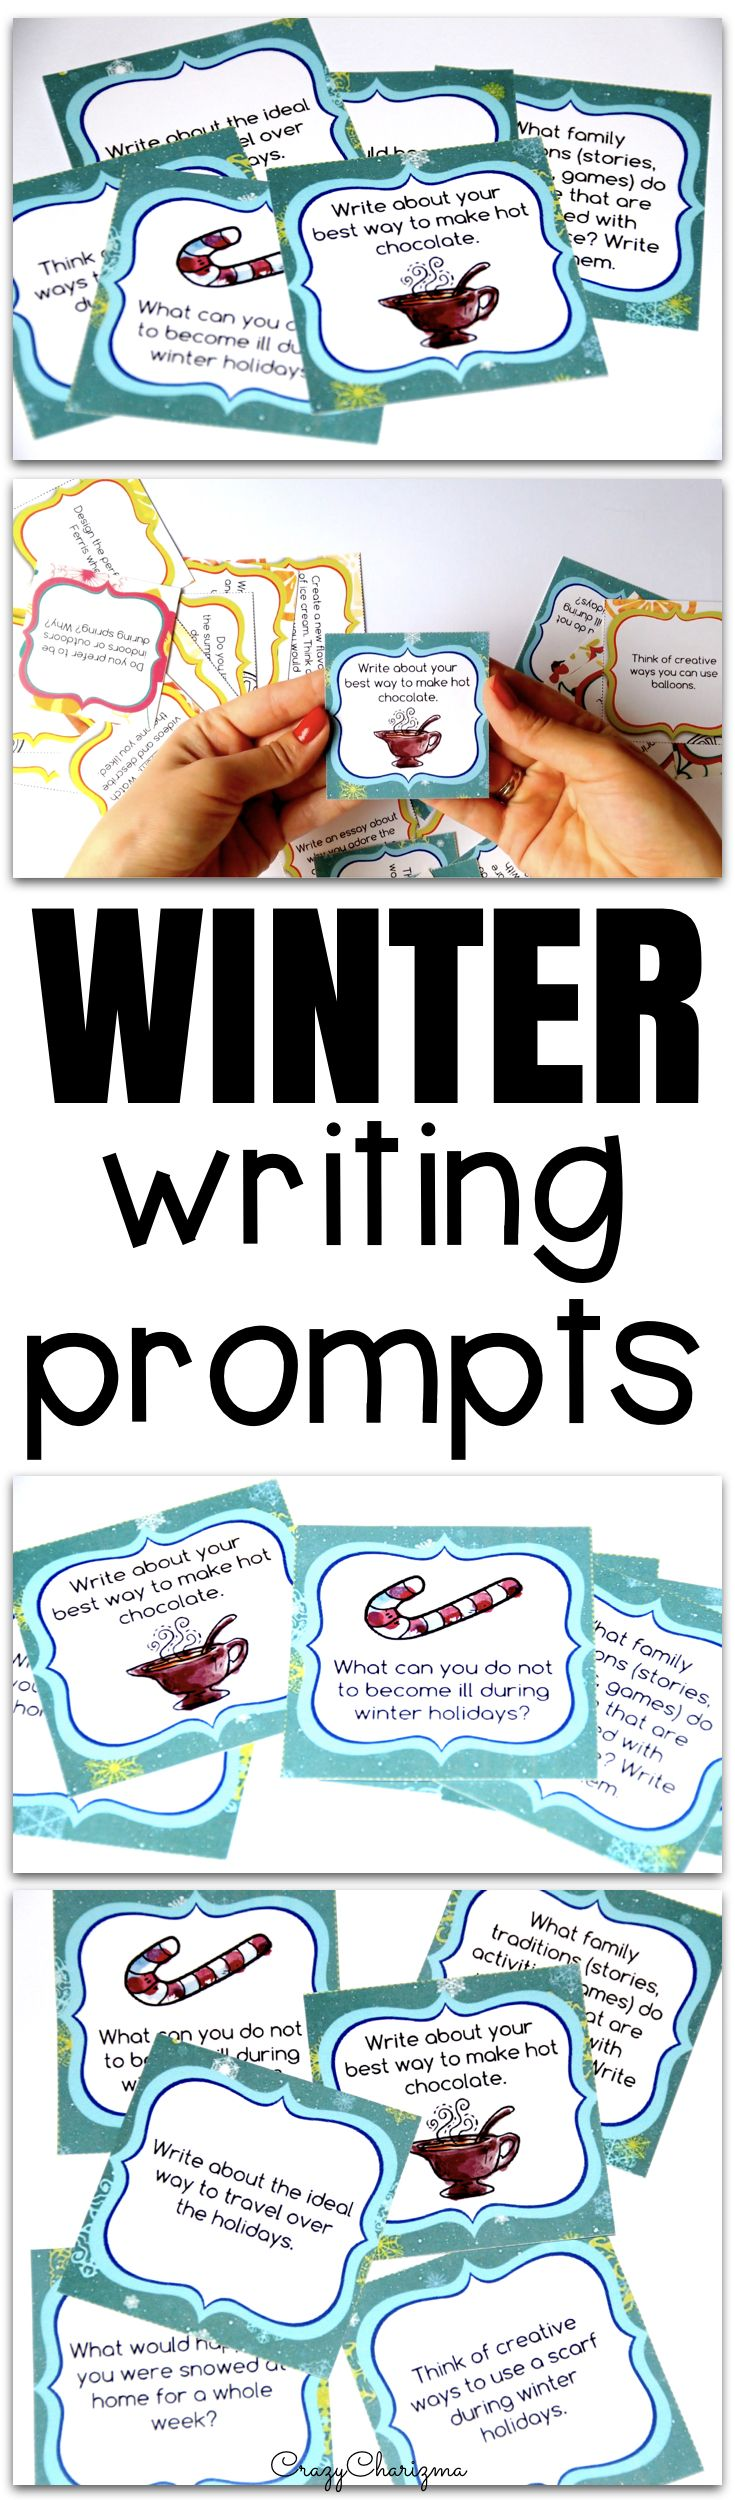 Celebrate WINTER in your classroom and provide students with writing tasks and ideas. The packet contains narrative, informational and opinion writing prompts for teens. The prompts can be used as Writing Centers, as well as with adults during ESL lessons.